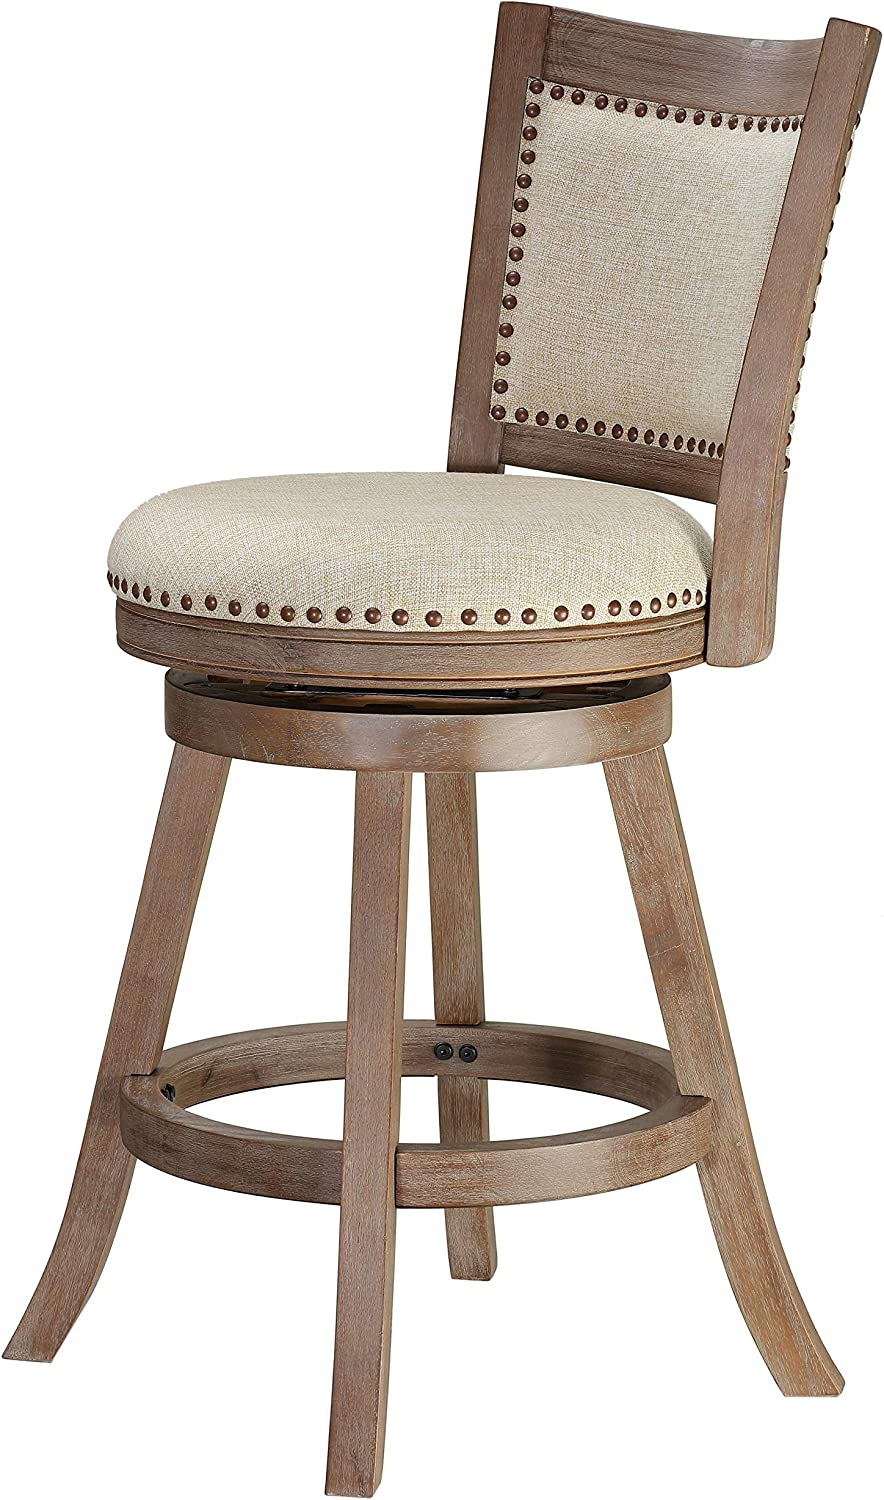 Cortesi Home Marko Stool in Beige Fabric Swivel Seat with Back, 24 Counter Height, Driftwood